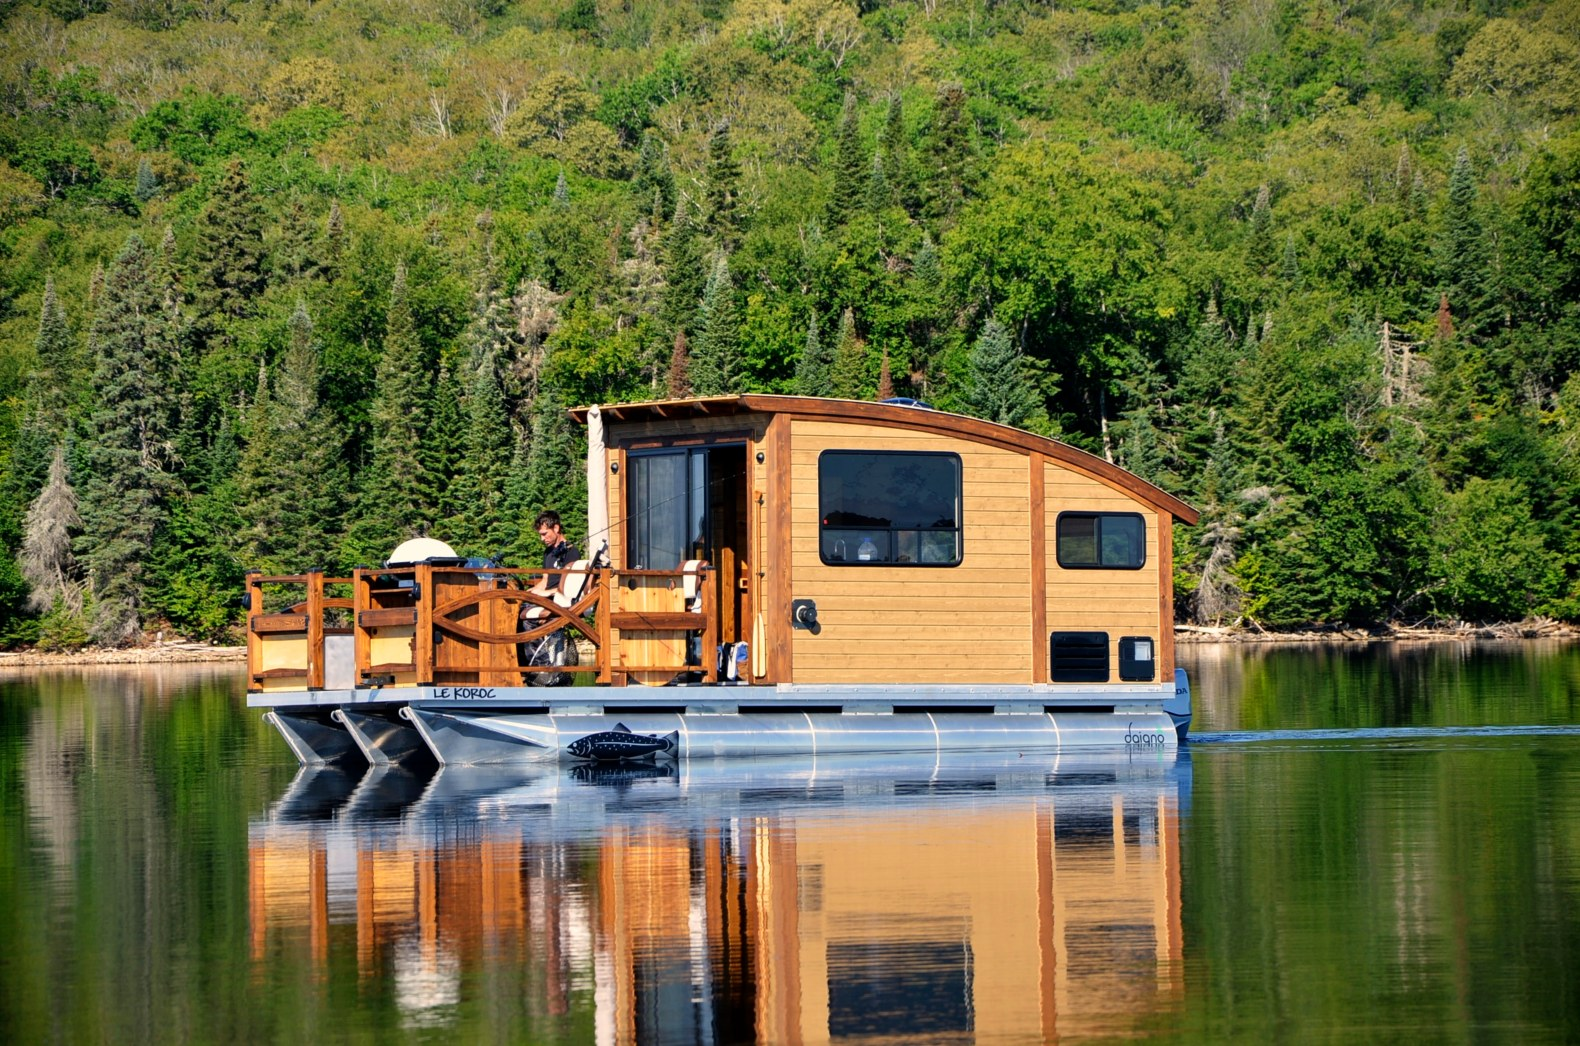 Sail your worries away on this solar-powered floating tiny home